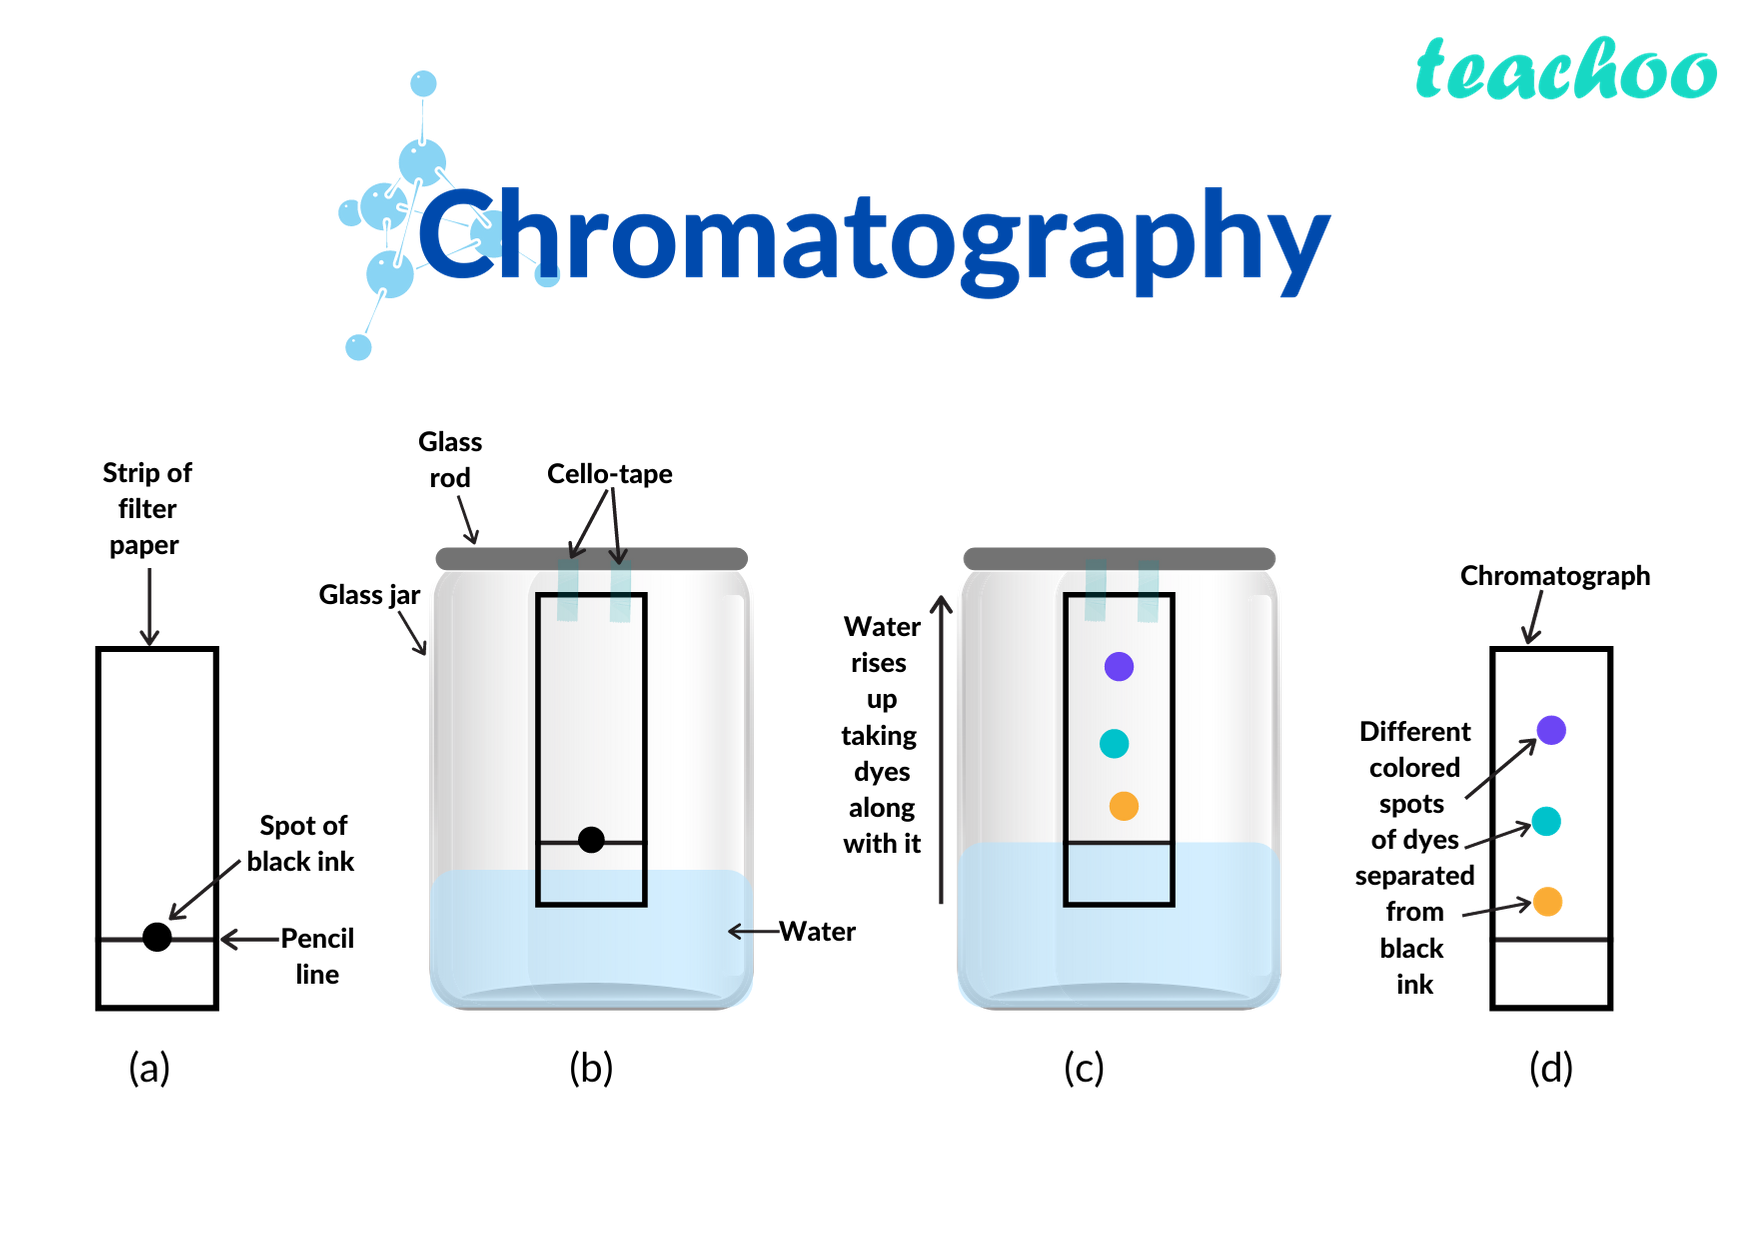 chromatography.png